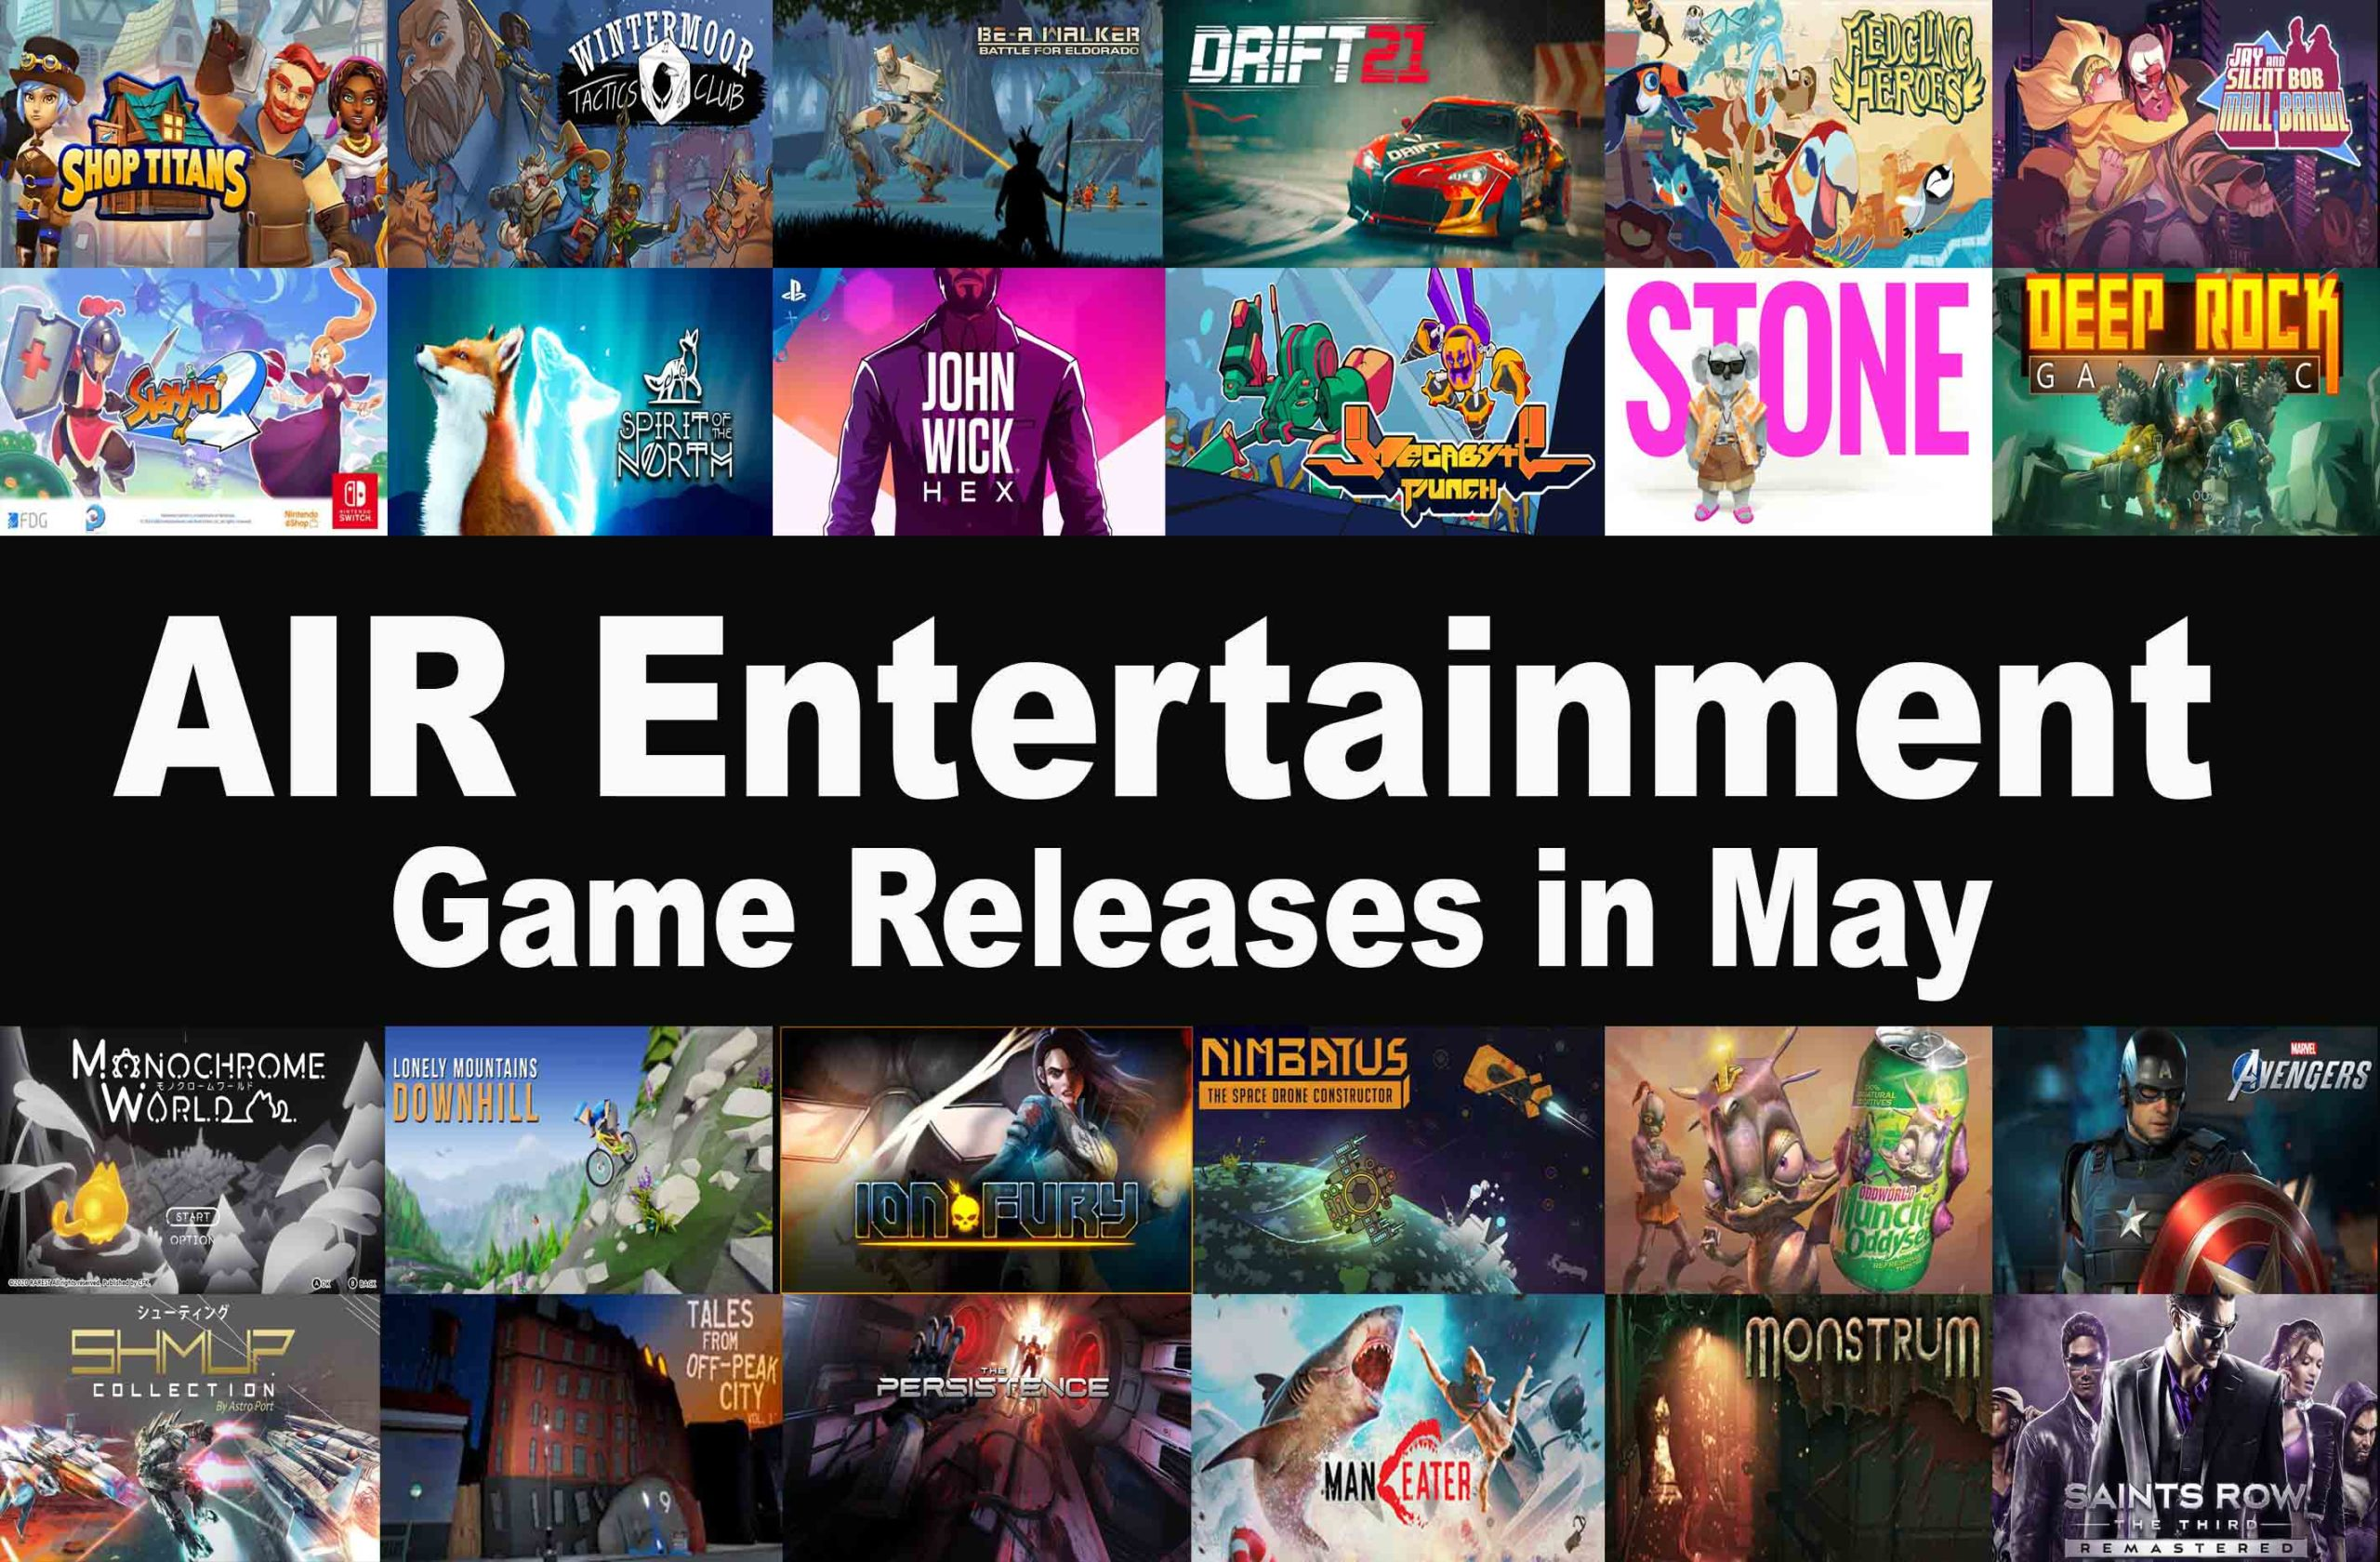 Game Releases in May